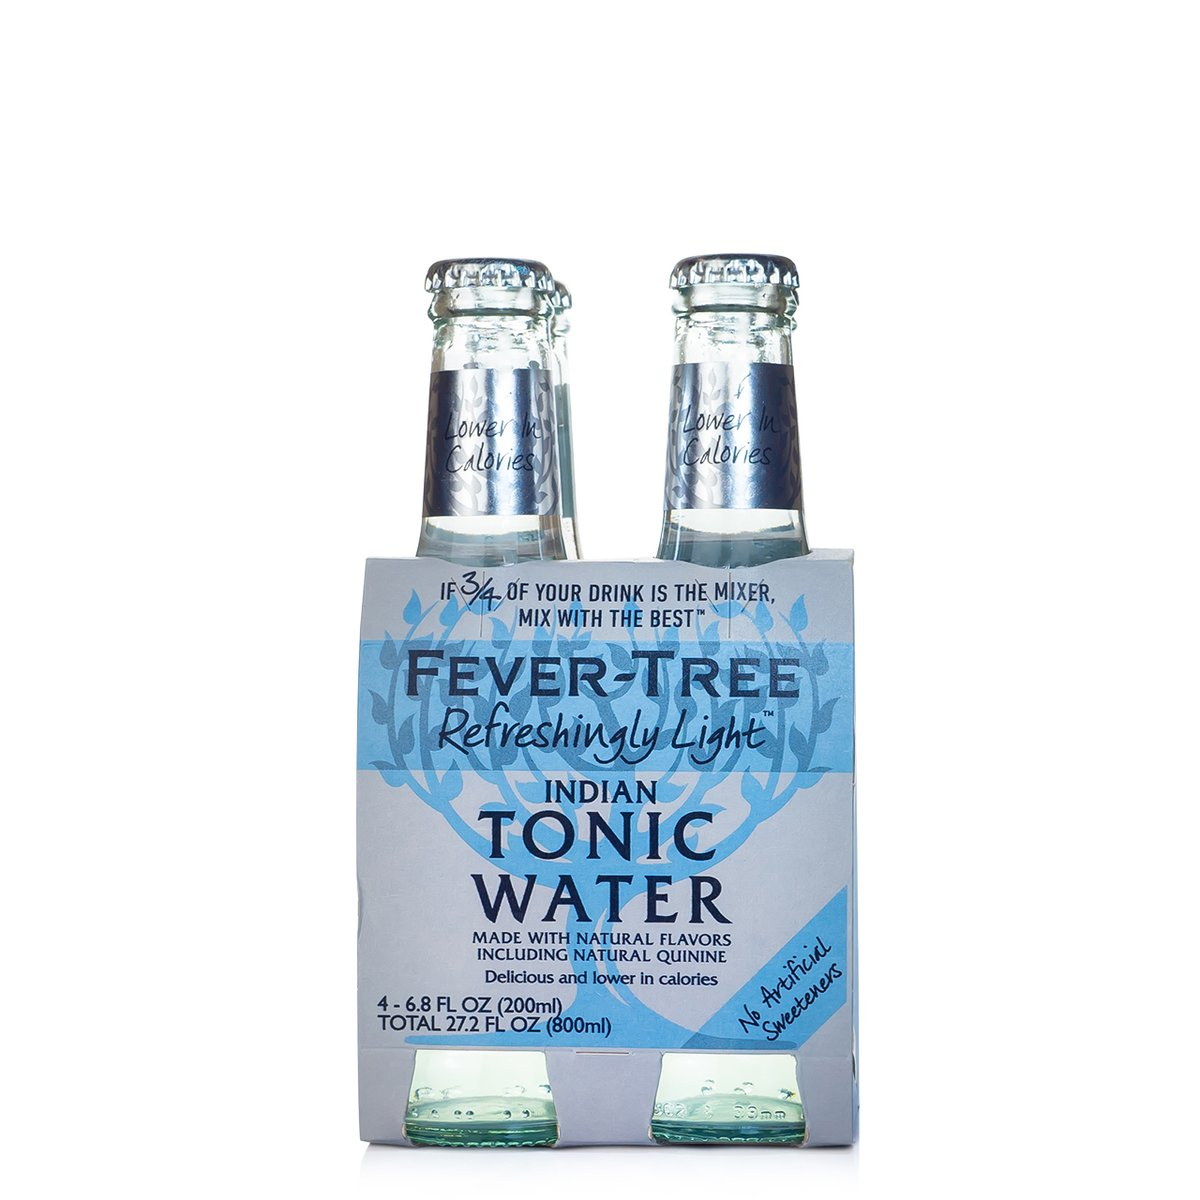 Fever Tree Light Tonic Water Photo